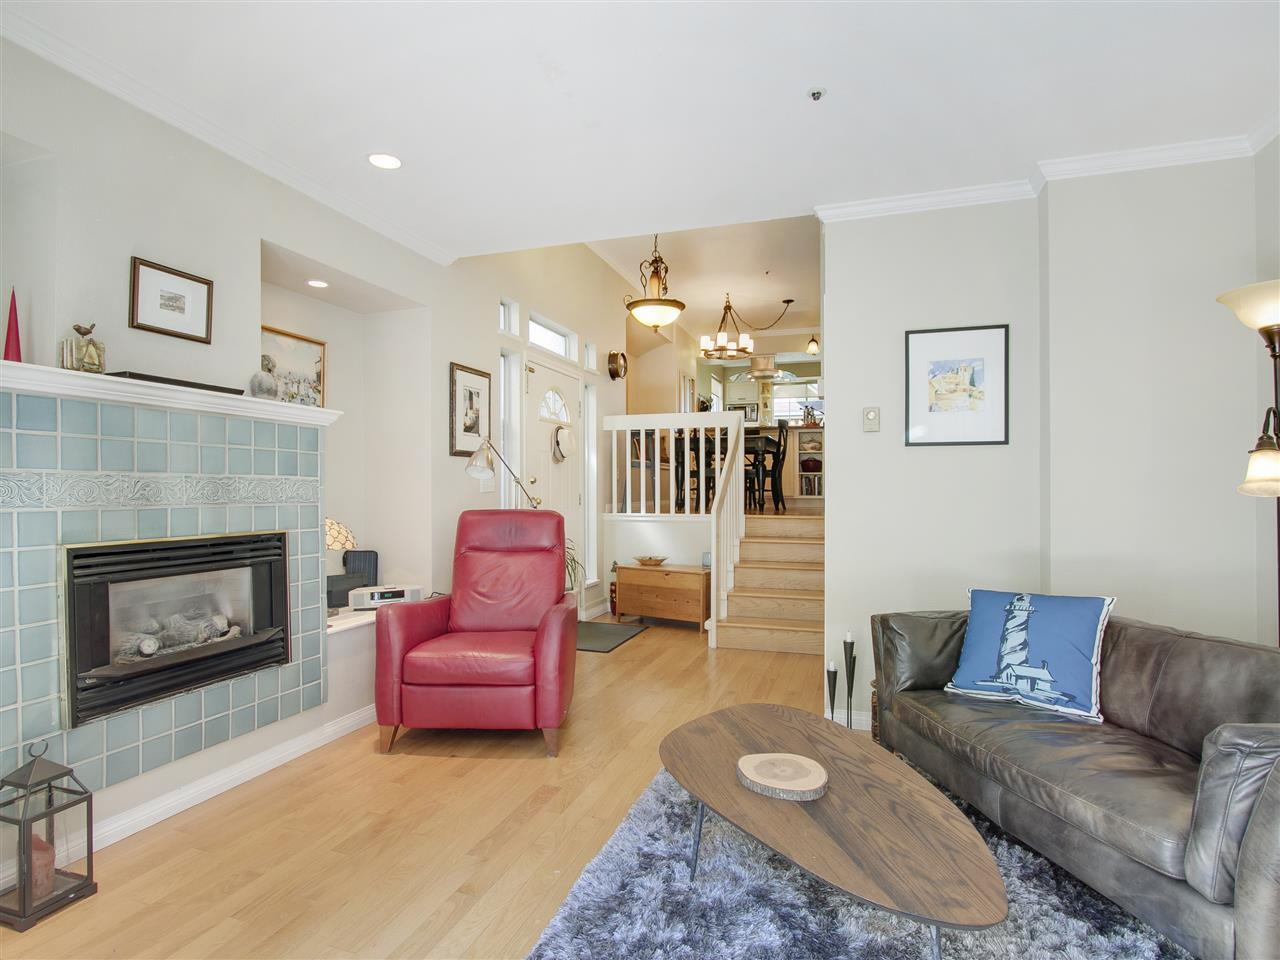 Photo 7: 314 W 15TH Avenue in Vancouver: Mount Pleasant VW Townhouse for sale (Vancouver West)  : MLS(r) # R2186637